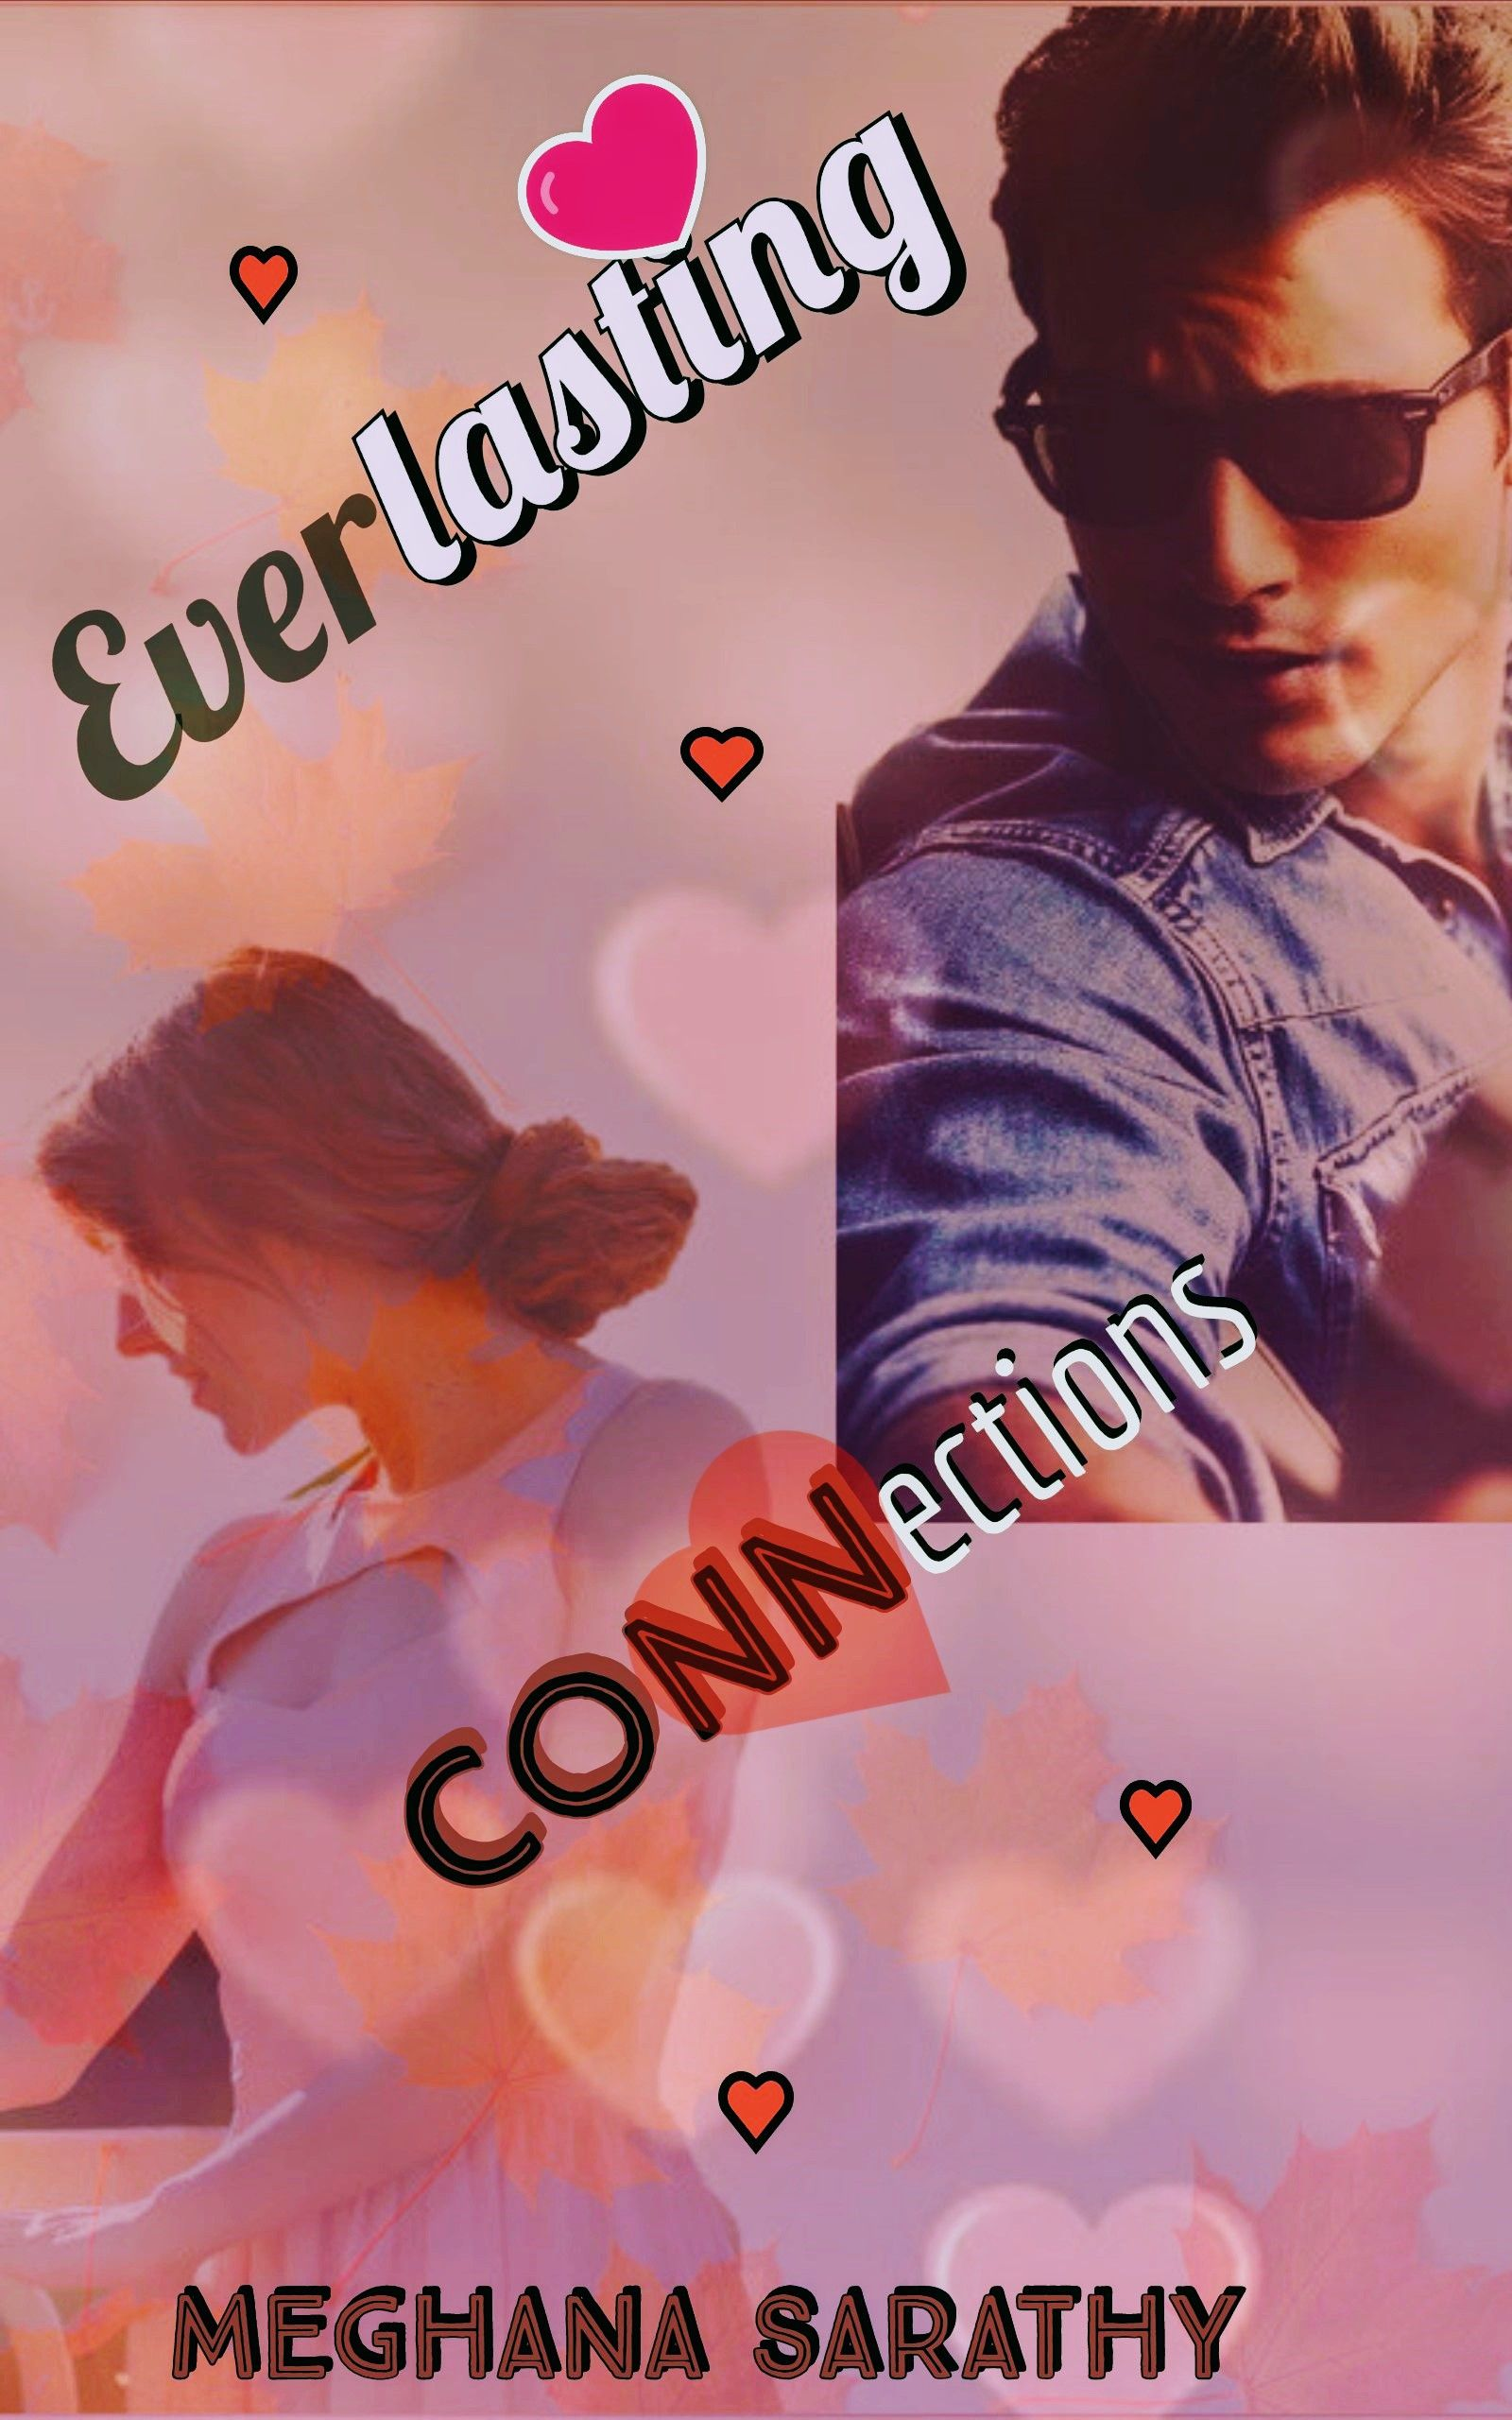 Everlasting Connections by Meghana Sarathy is LIVE KU